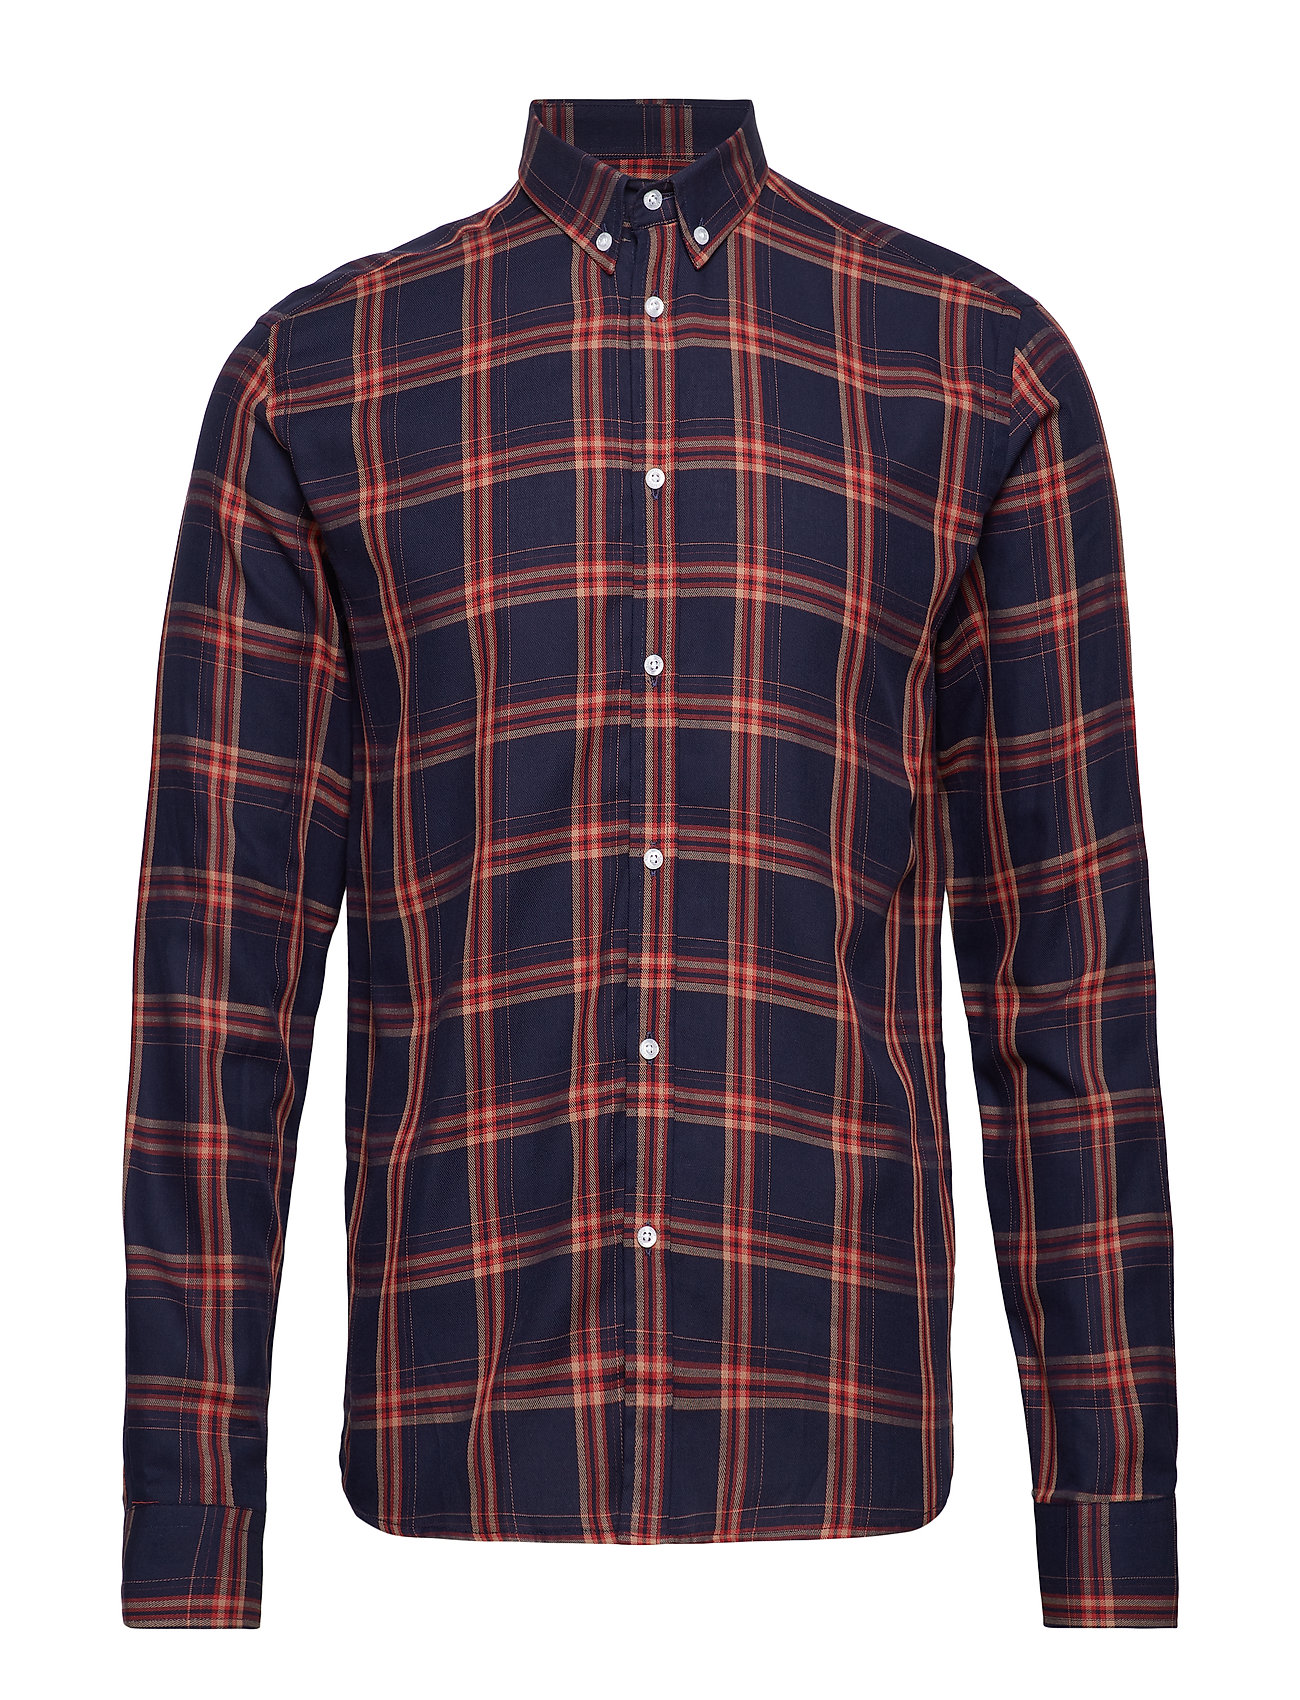 Navy Deux Shirtdark Boswell Boswell CheckLes hrdtCsQx